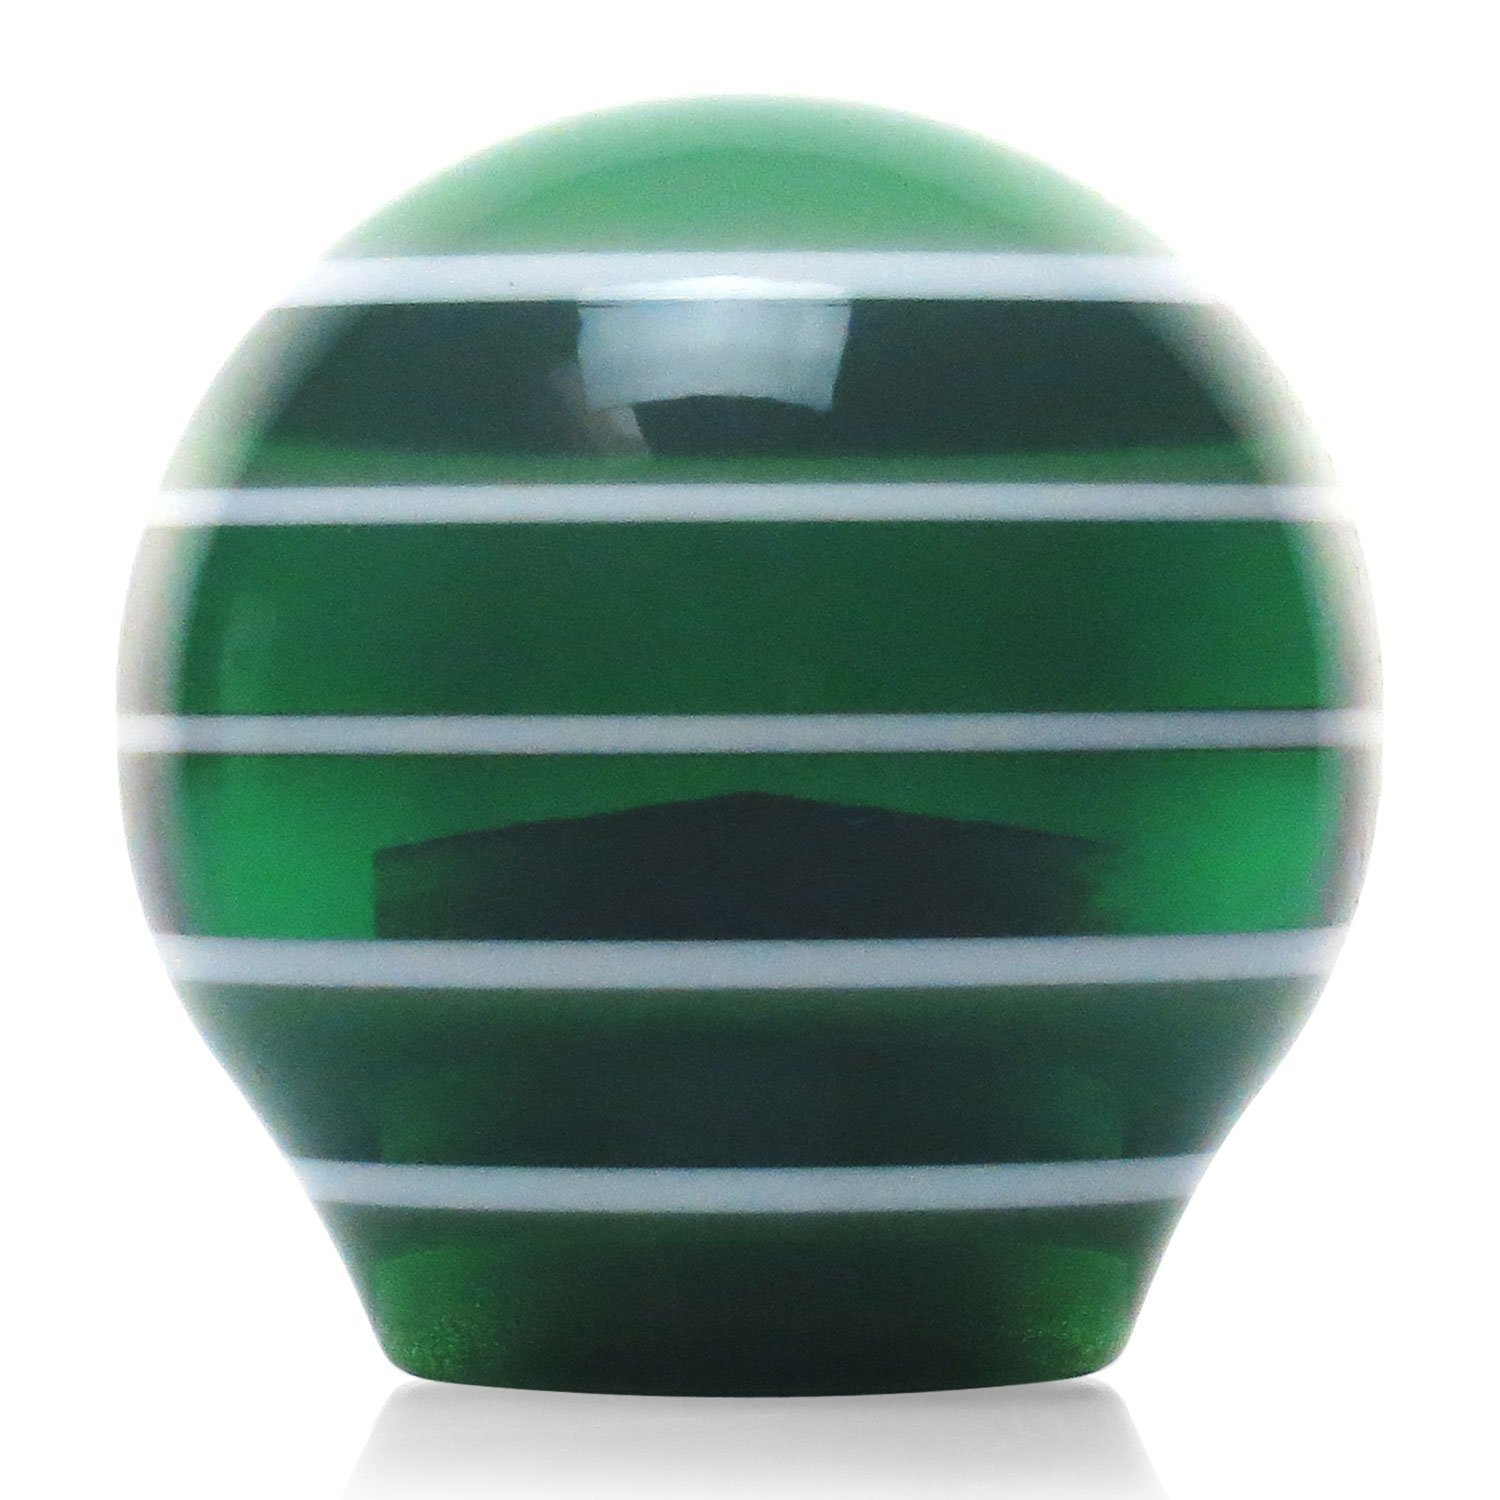 American Shifter 275223 Shift Knob Red Pisces Green Stripe with M16 x 1.5 Insert